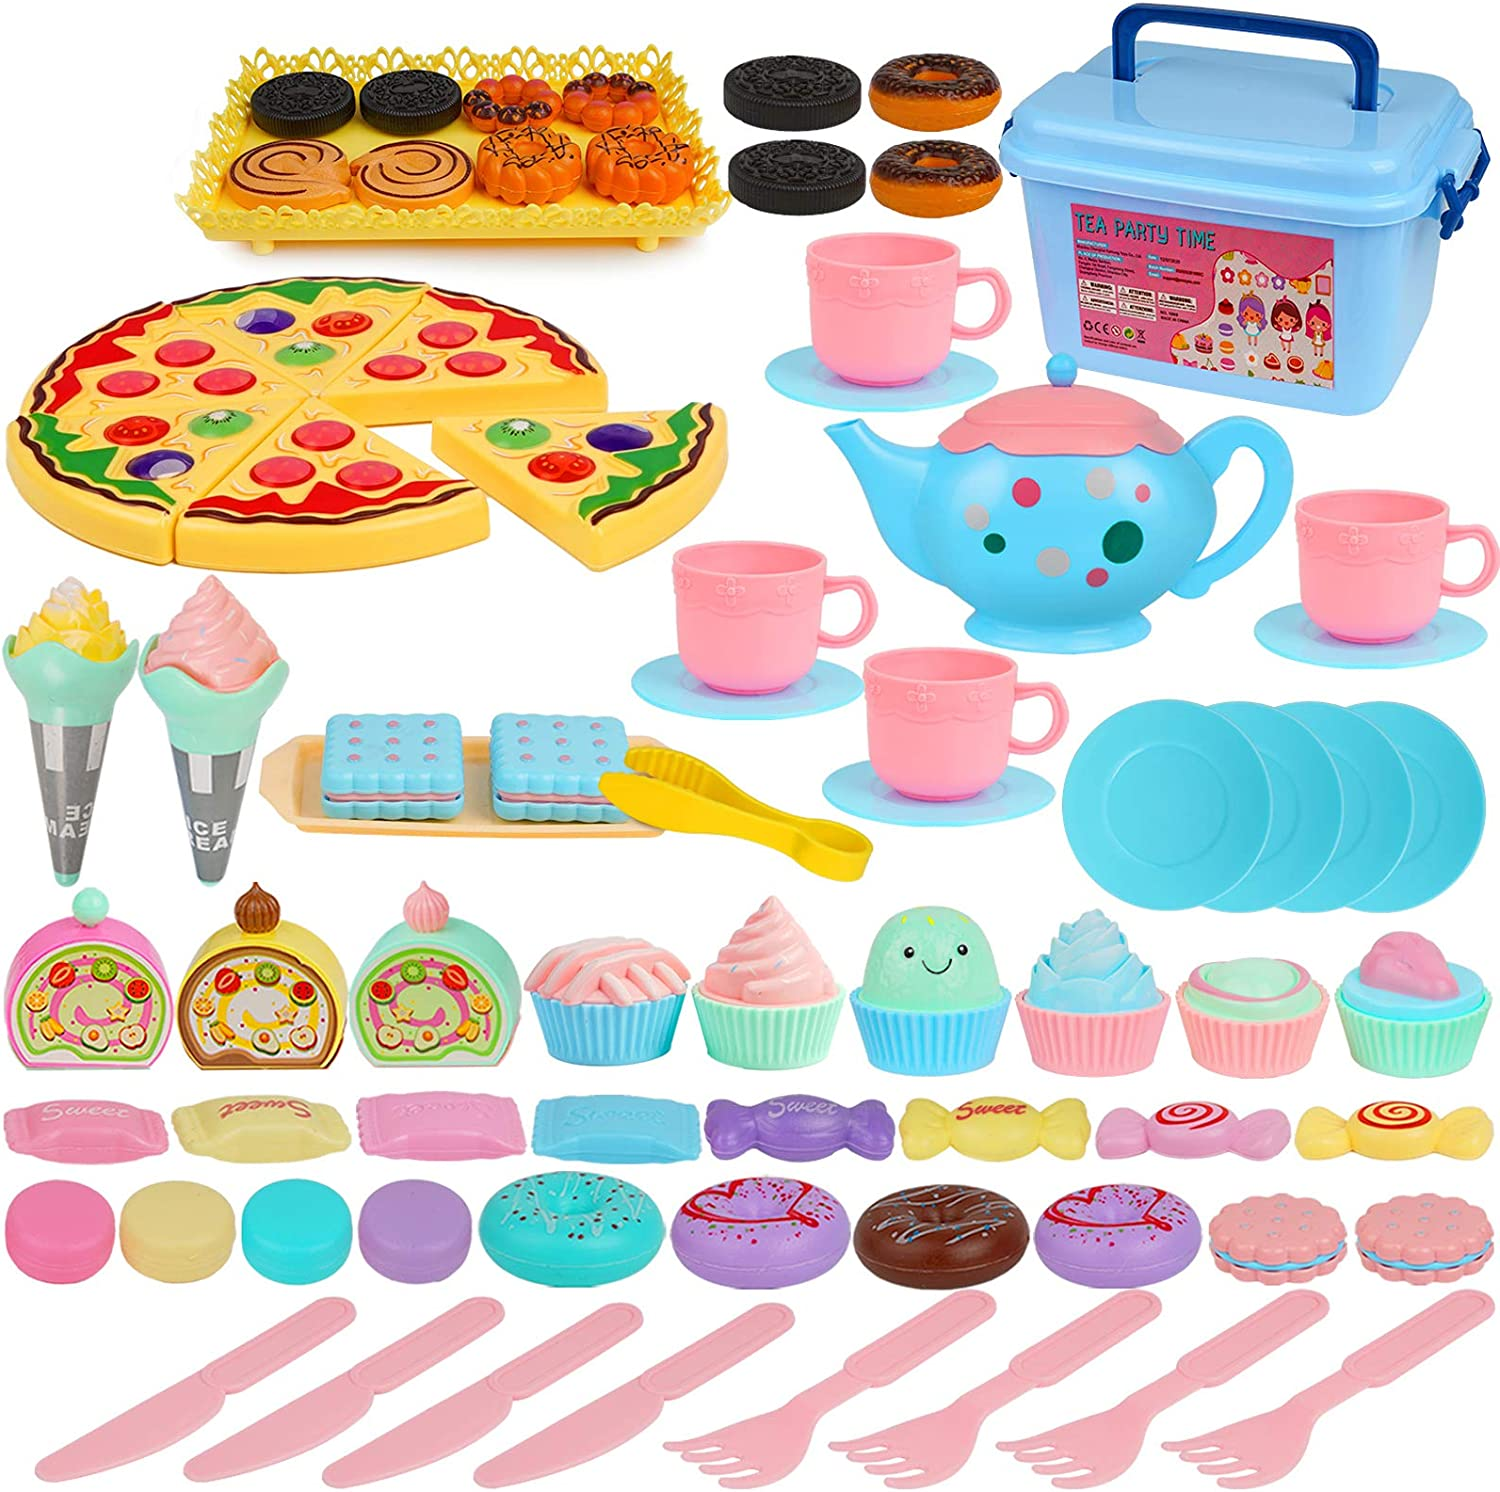 COSILY Kids Tea Set 74 PCS Pretend Play Food Sets for Kids Including Plastic Teapots Teacups Cookies Cakes Donuts for Toddlers Boys and Girls